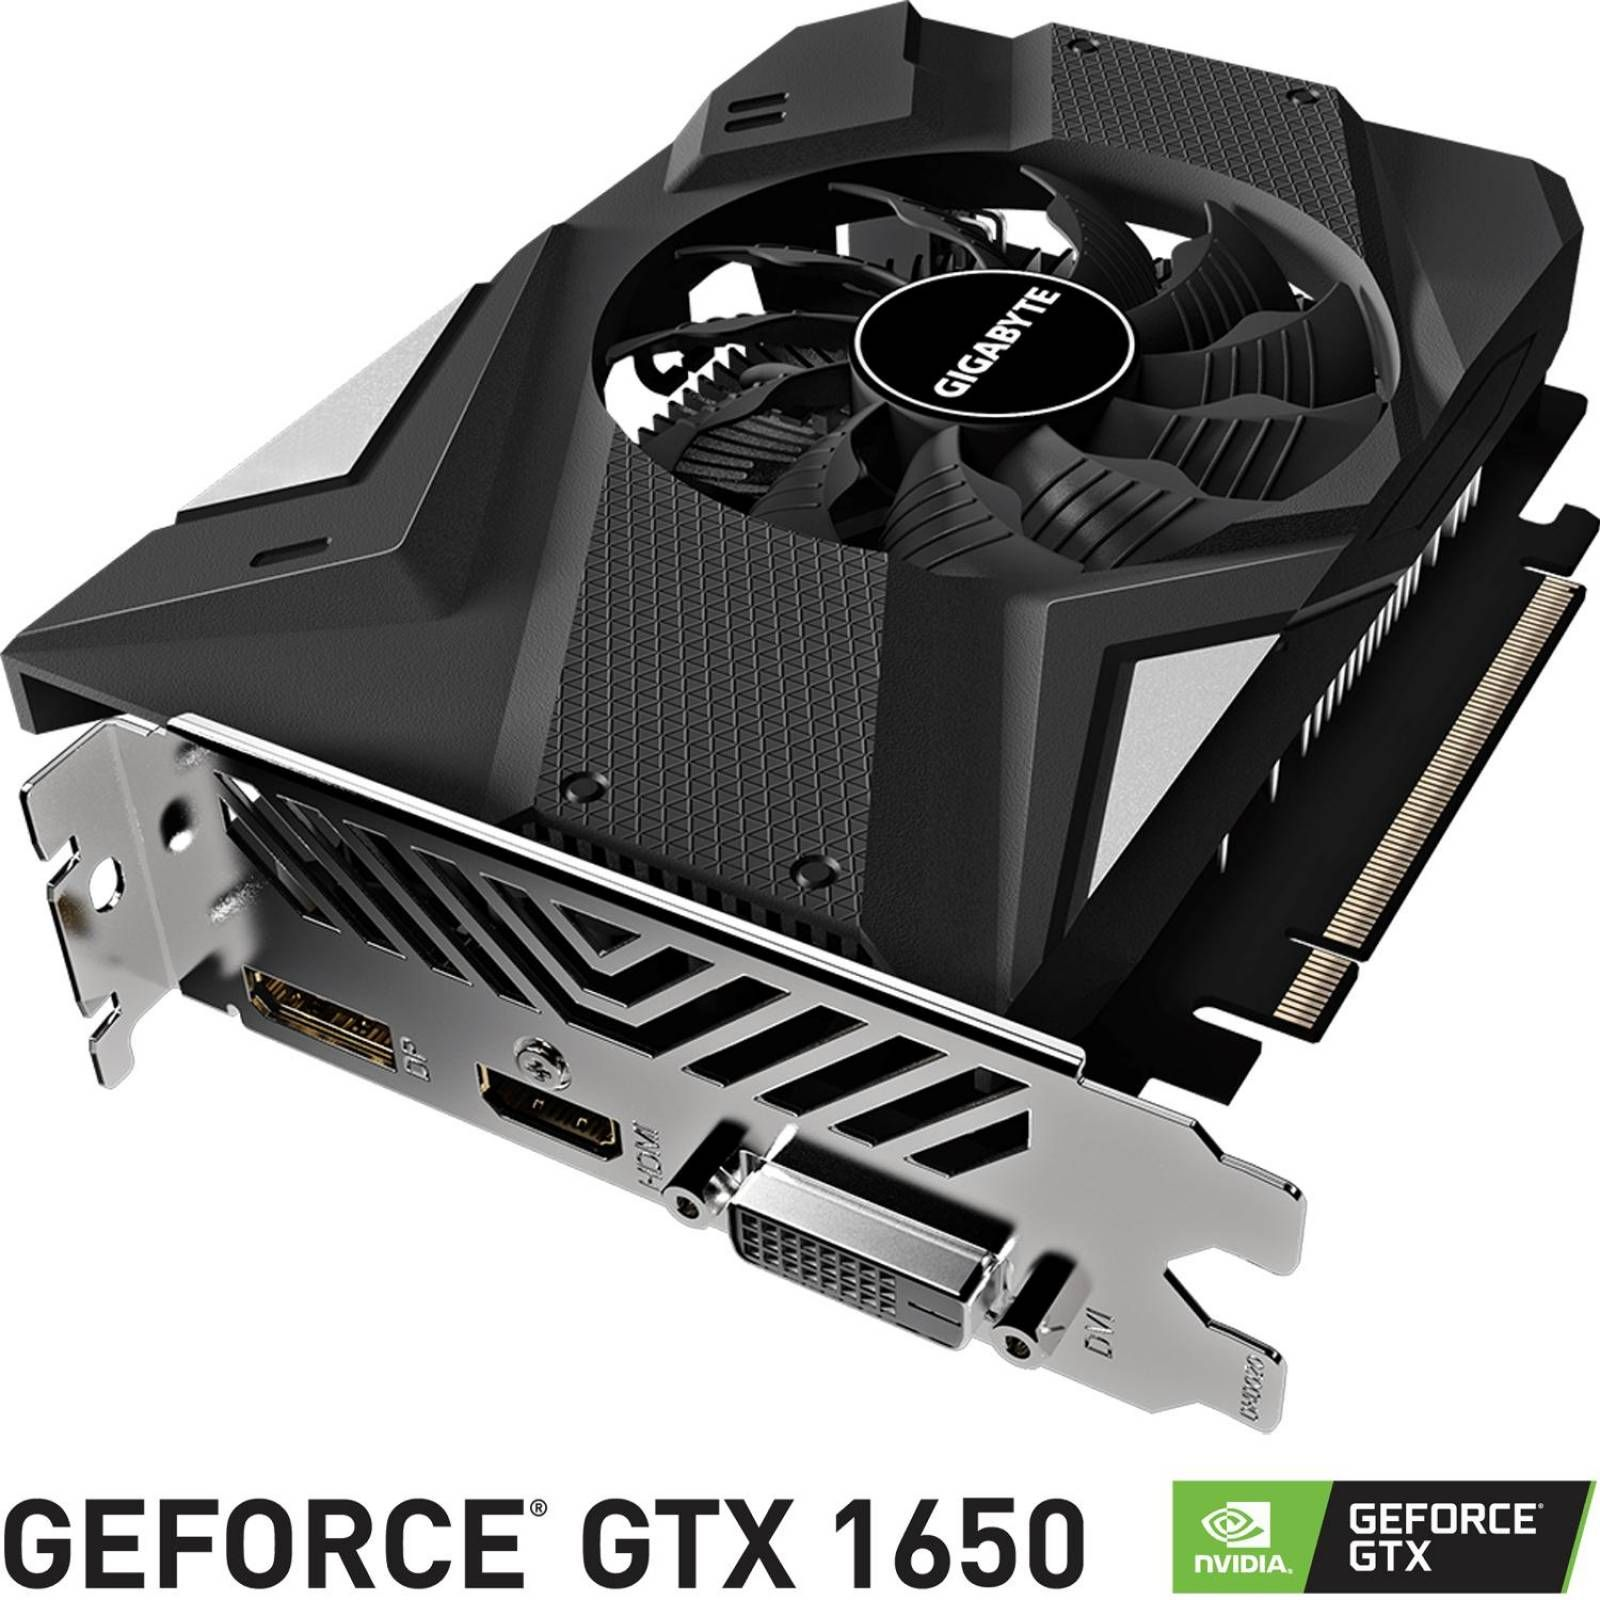 tarjeta-de-video-gigabyte-nvidia-geforce-gtx-1650-super-4gb-gddr6-128-bit-pci-e-3-0-x16-